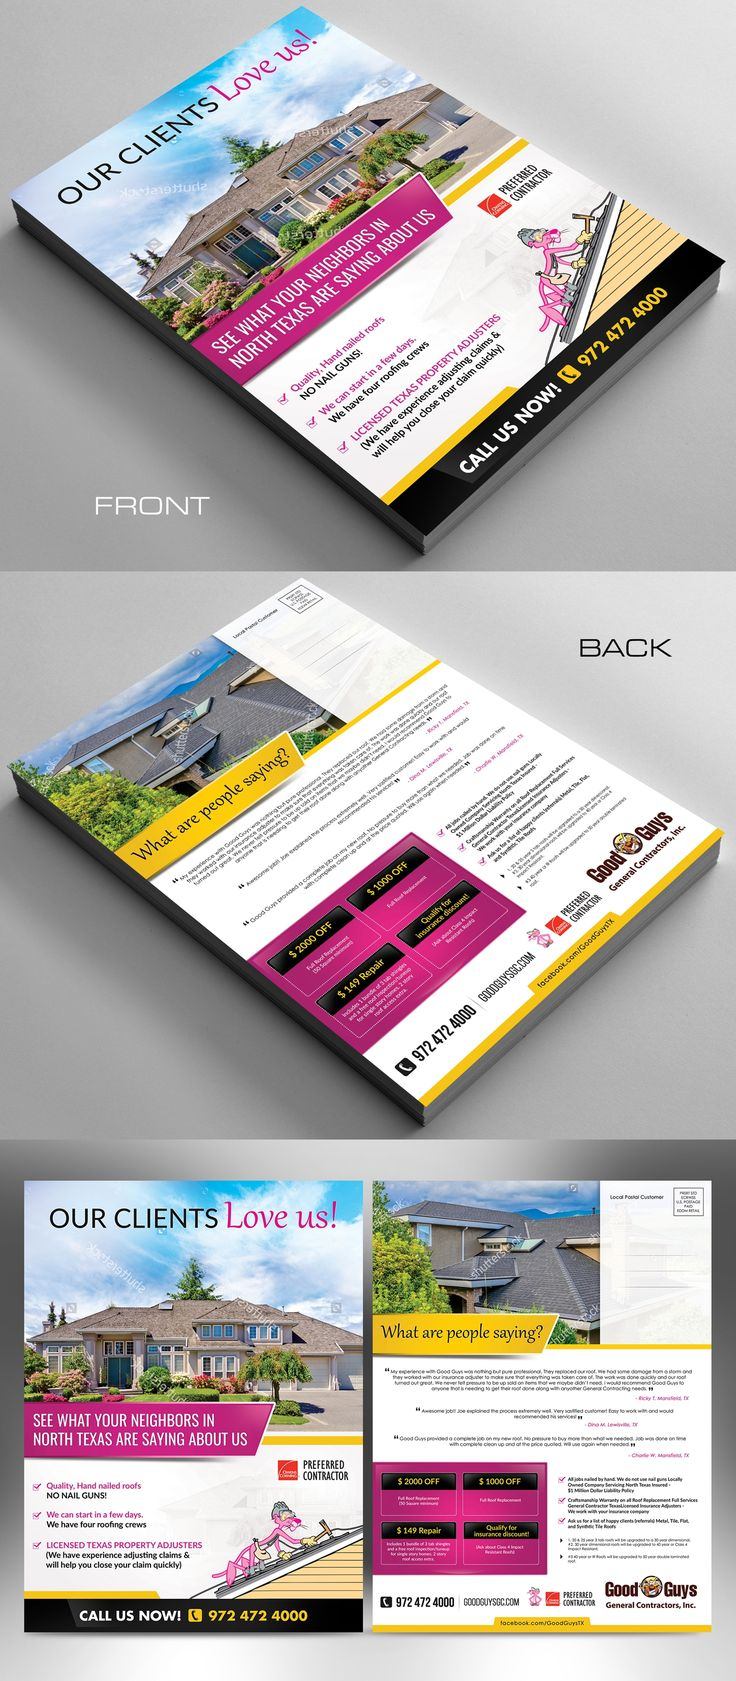 Designs | Roofing Company Direct Mailer - Pink Panther | Postcard, flyer or print contest